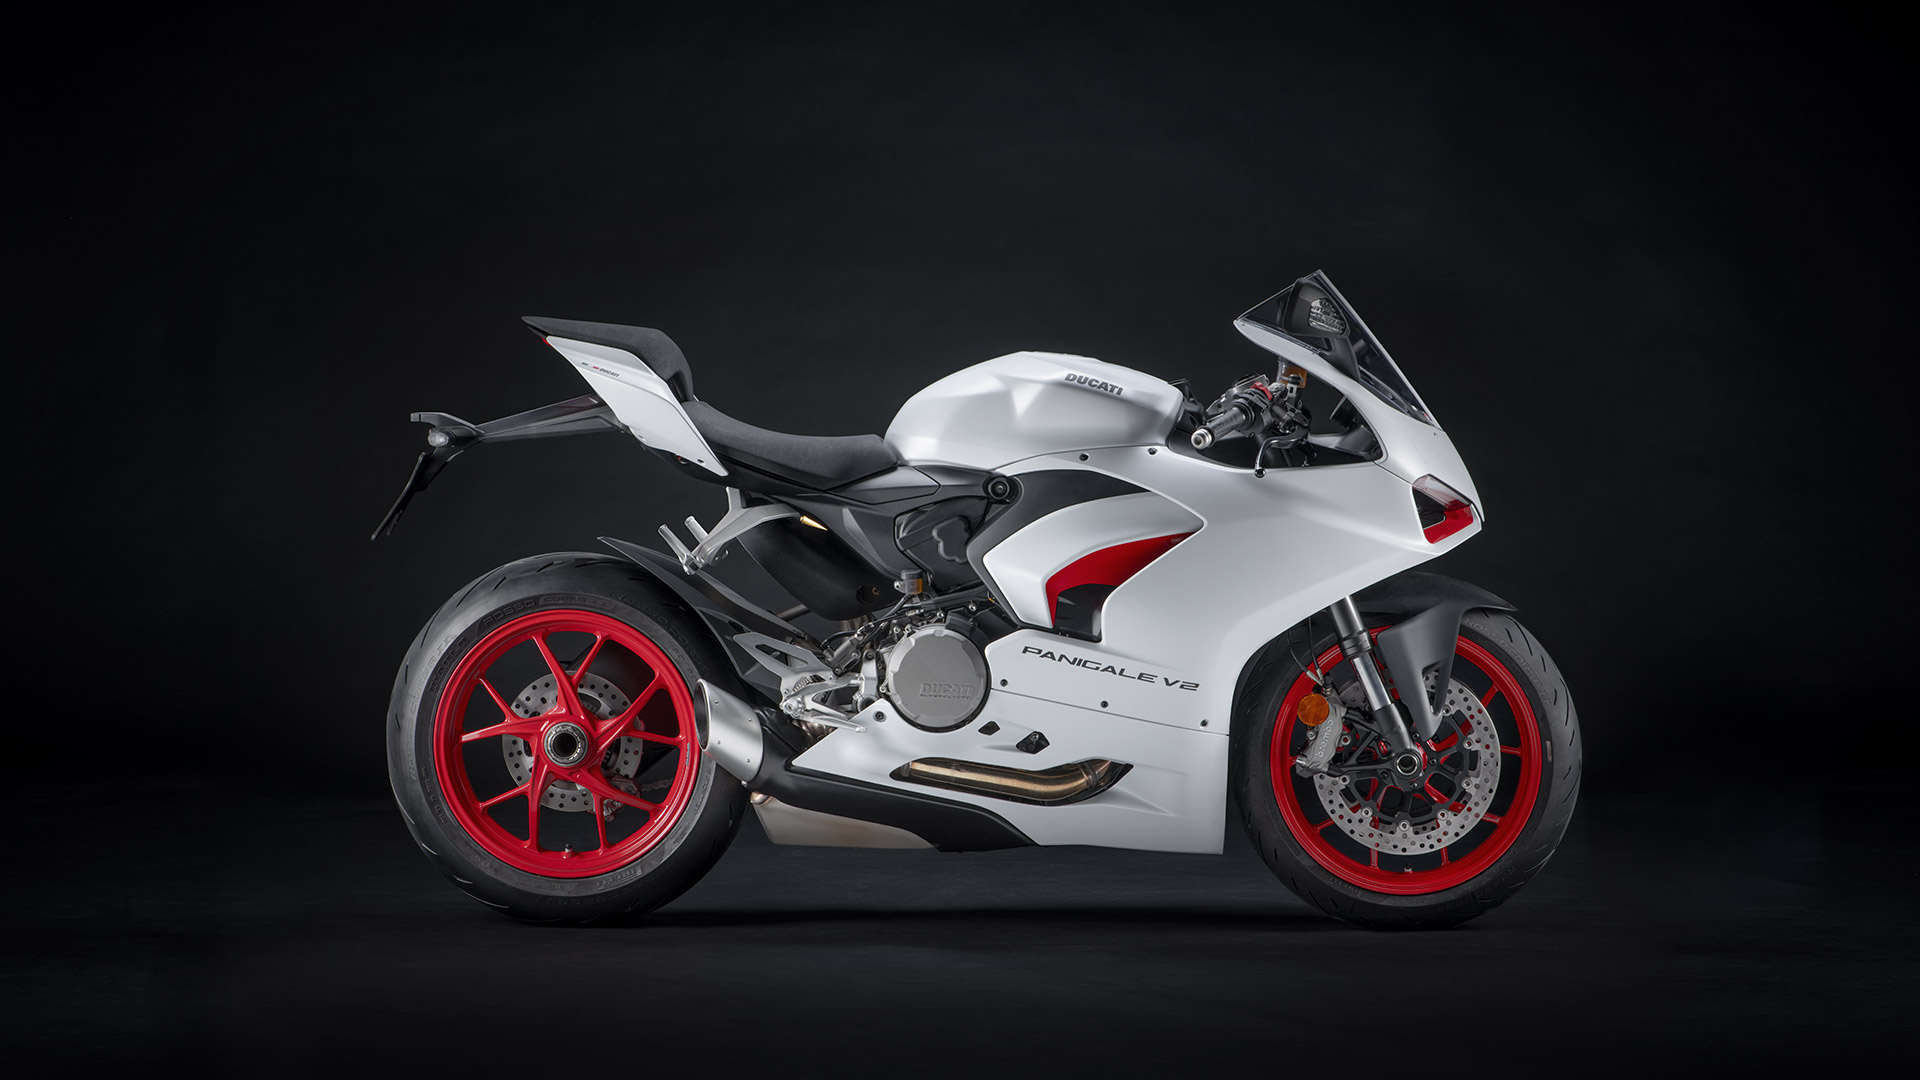 New Panigale V2: High Performance, Red Essence | Ducati